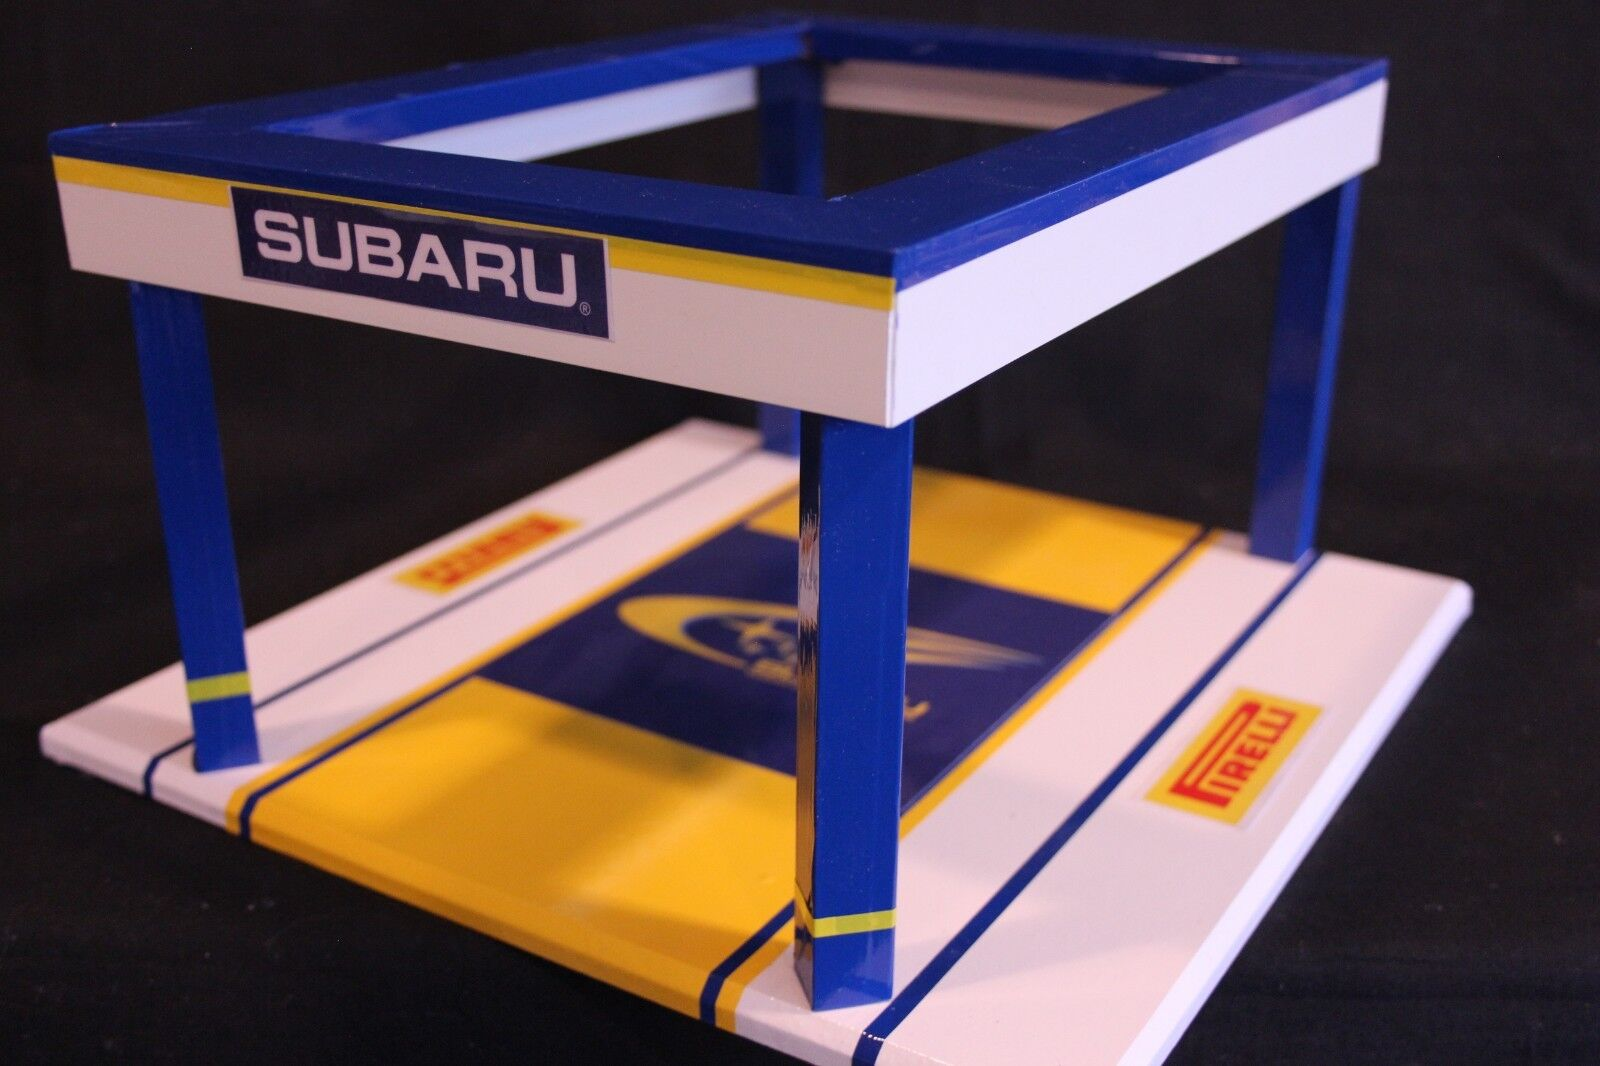 QSP Diorama 1 18 Subaru Rally Team Service Tent (comes without car) type 4